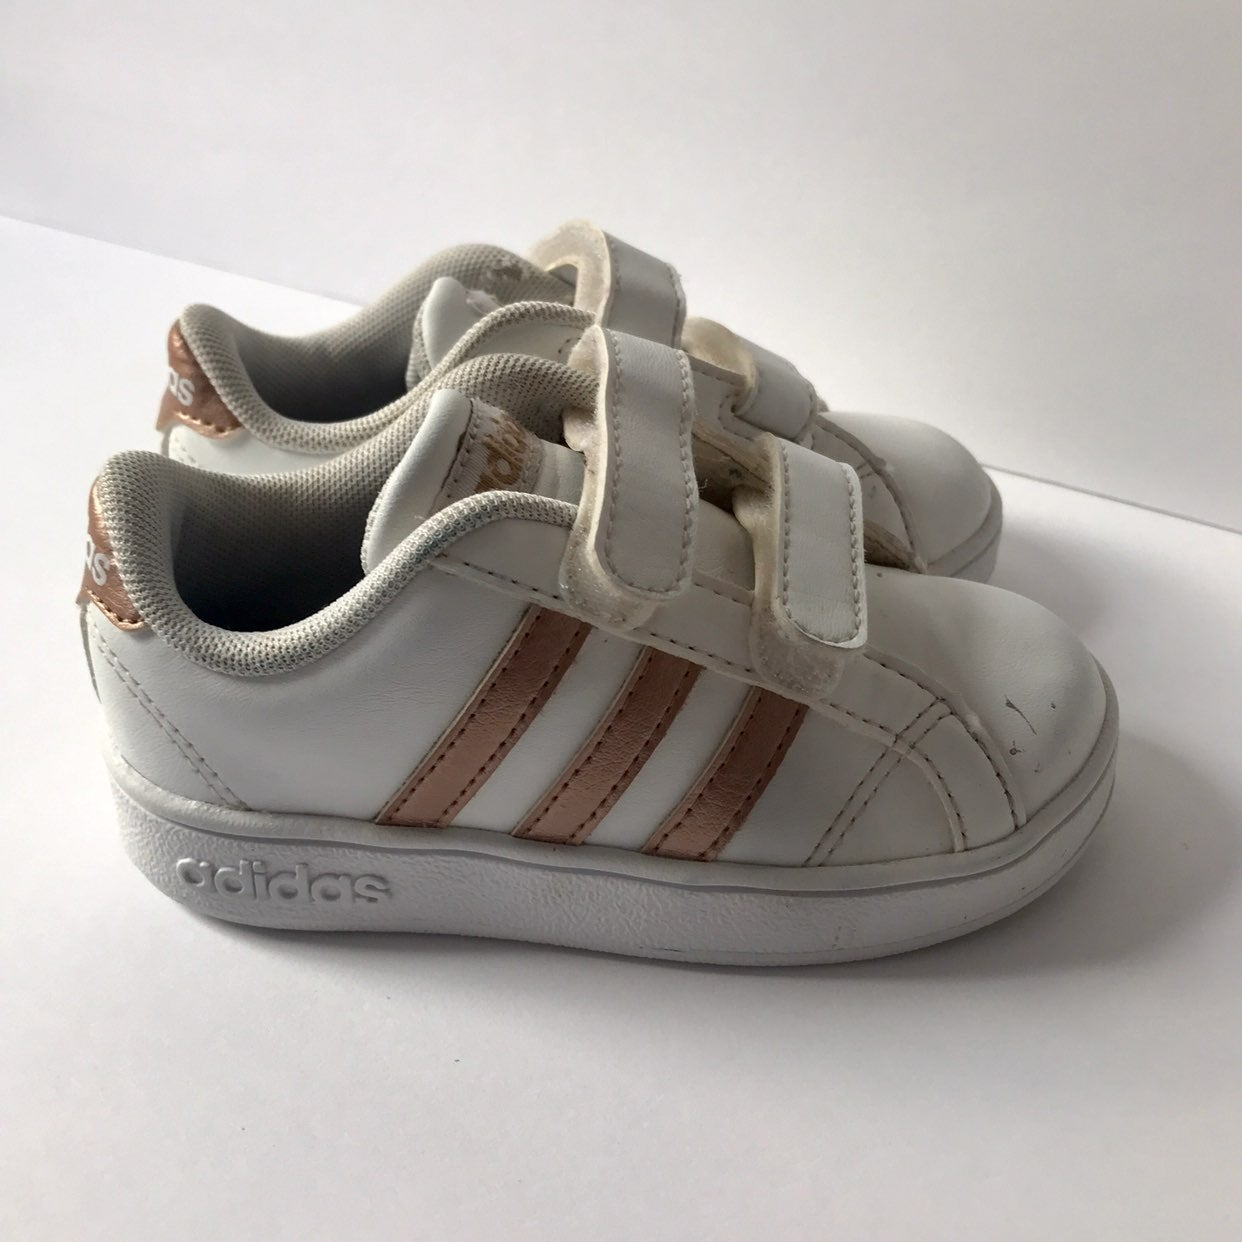 Adidas Toddler size 7K